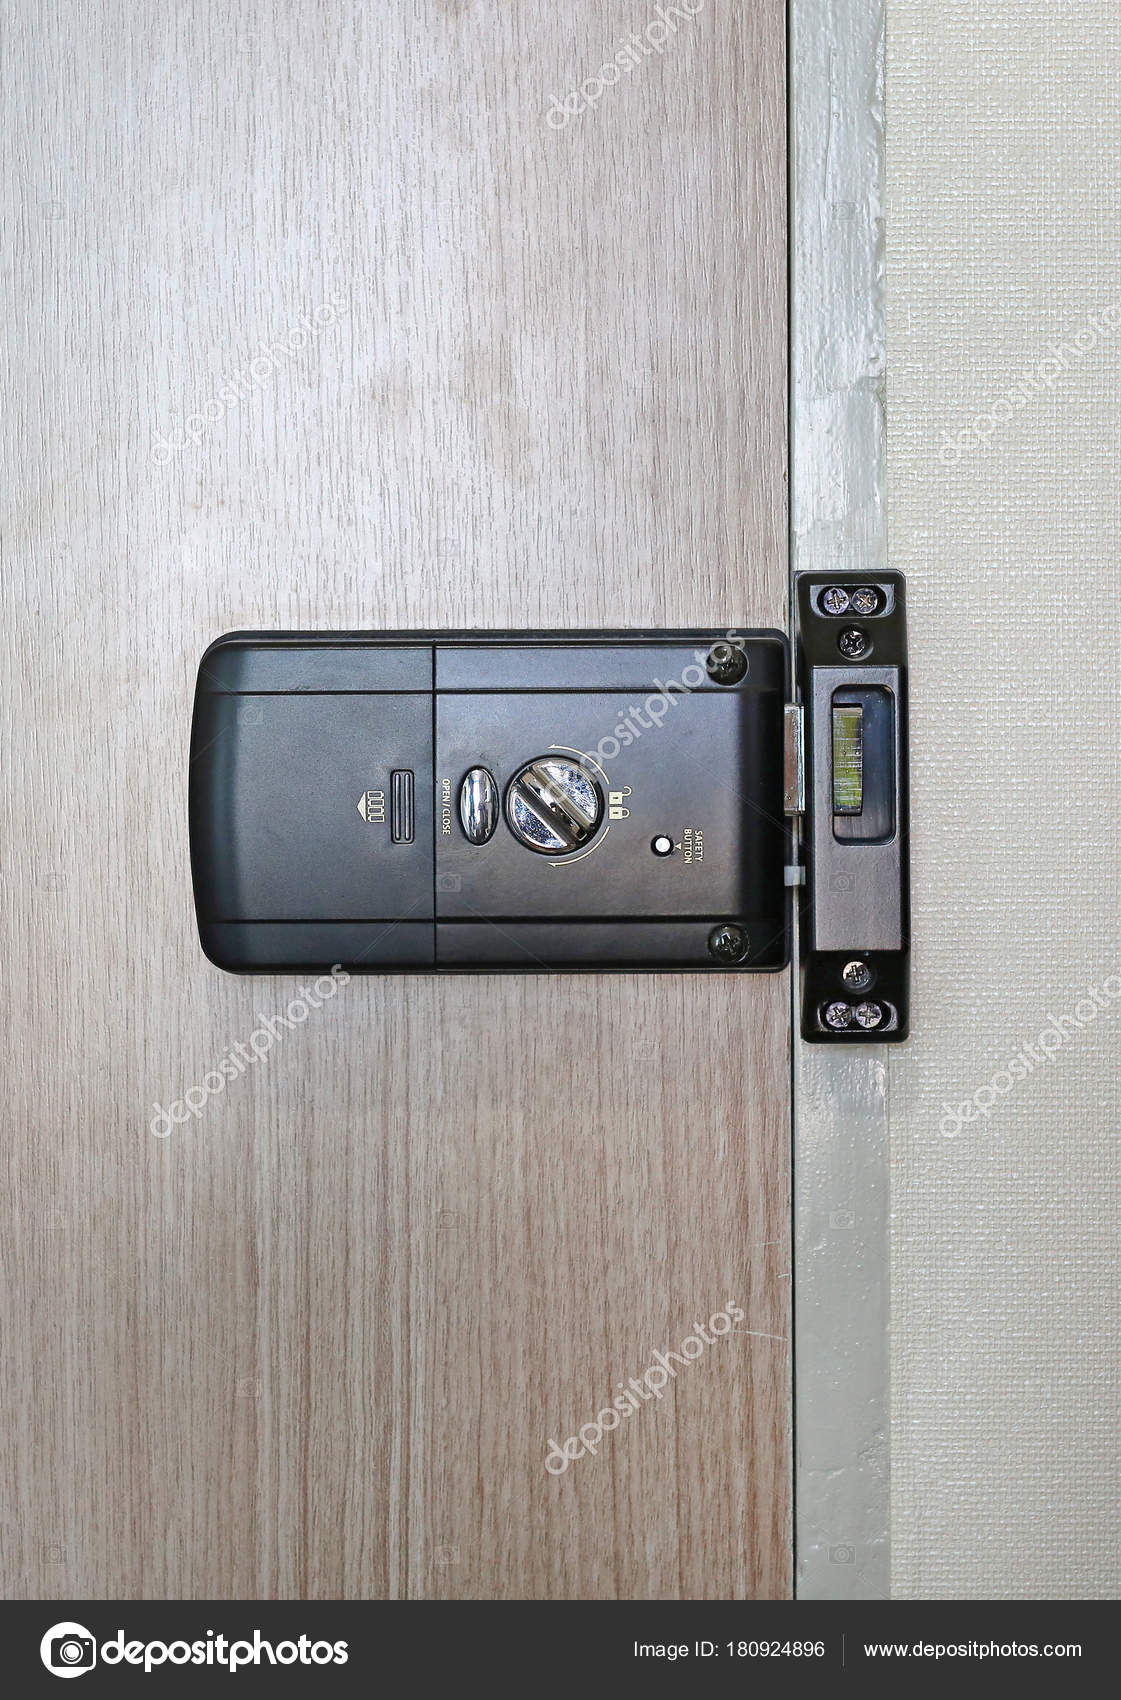 products shipping electronic silver screen bluetooth back free touch steel door mortise money front guarantee lock digital smart